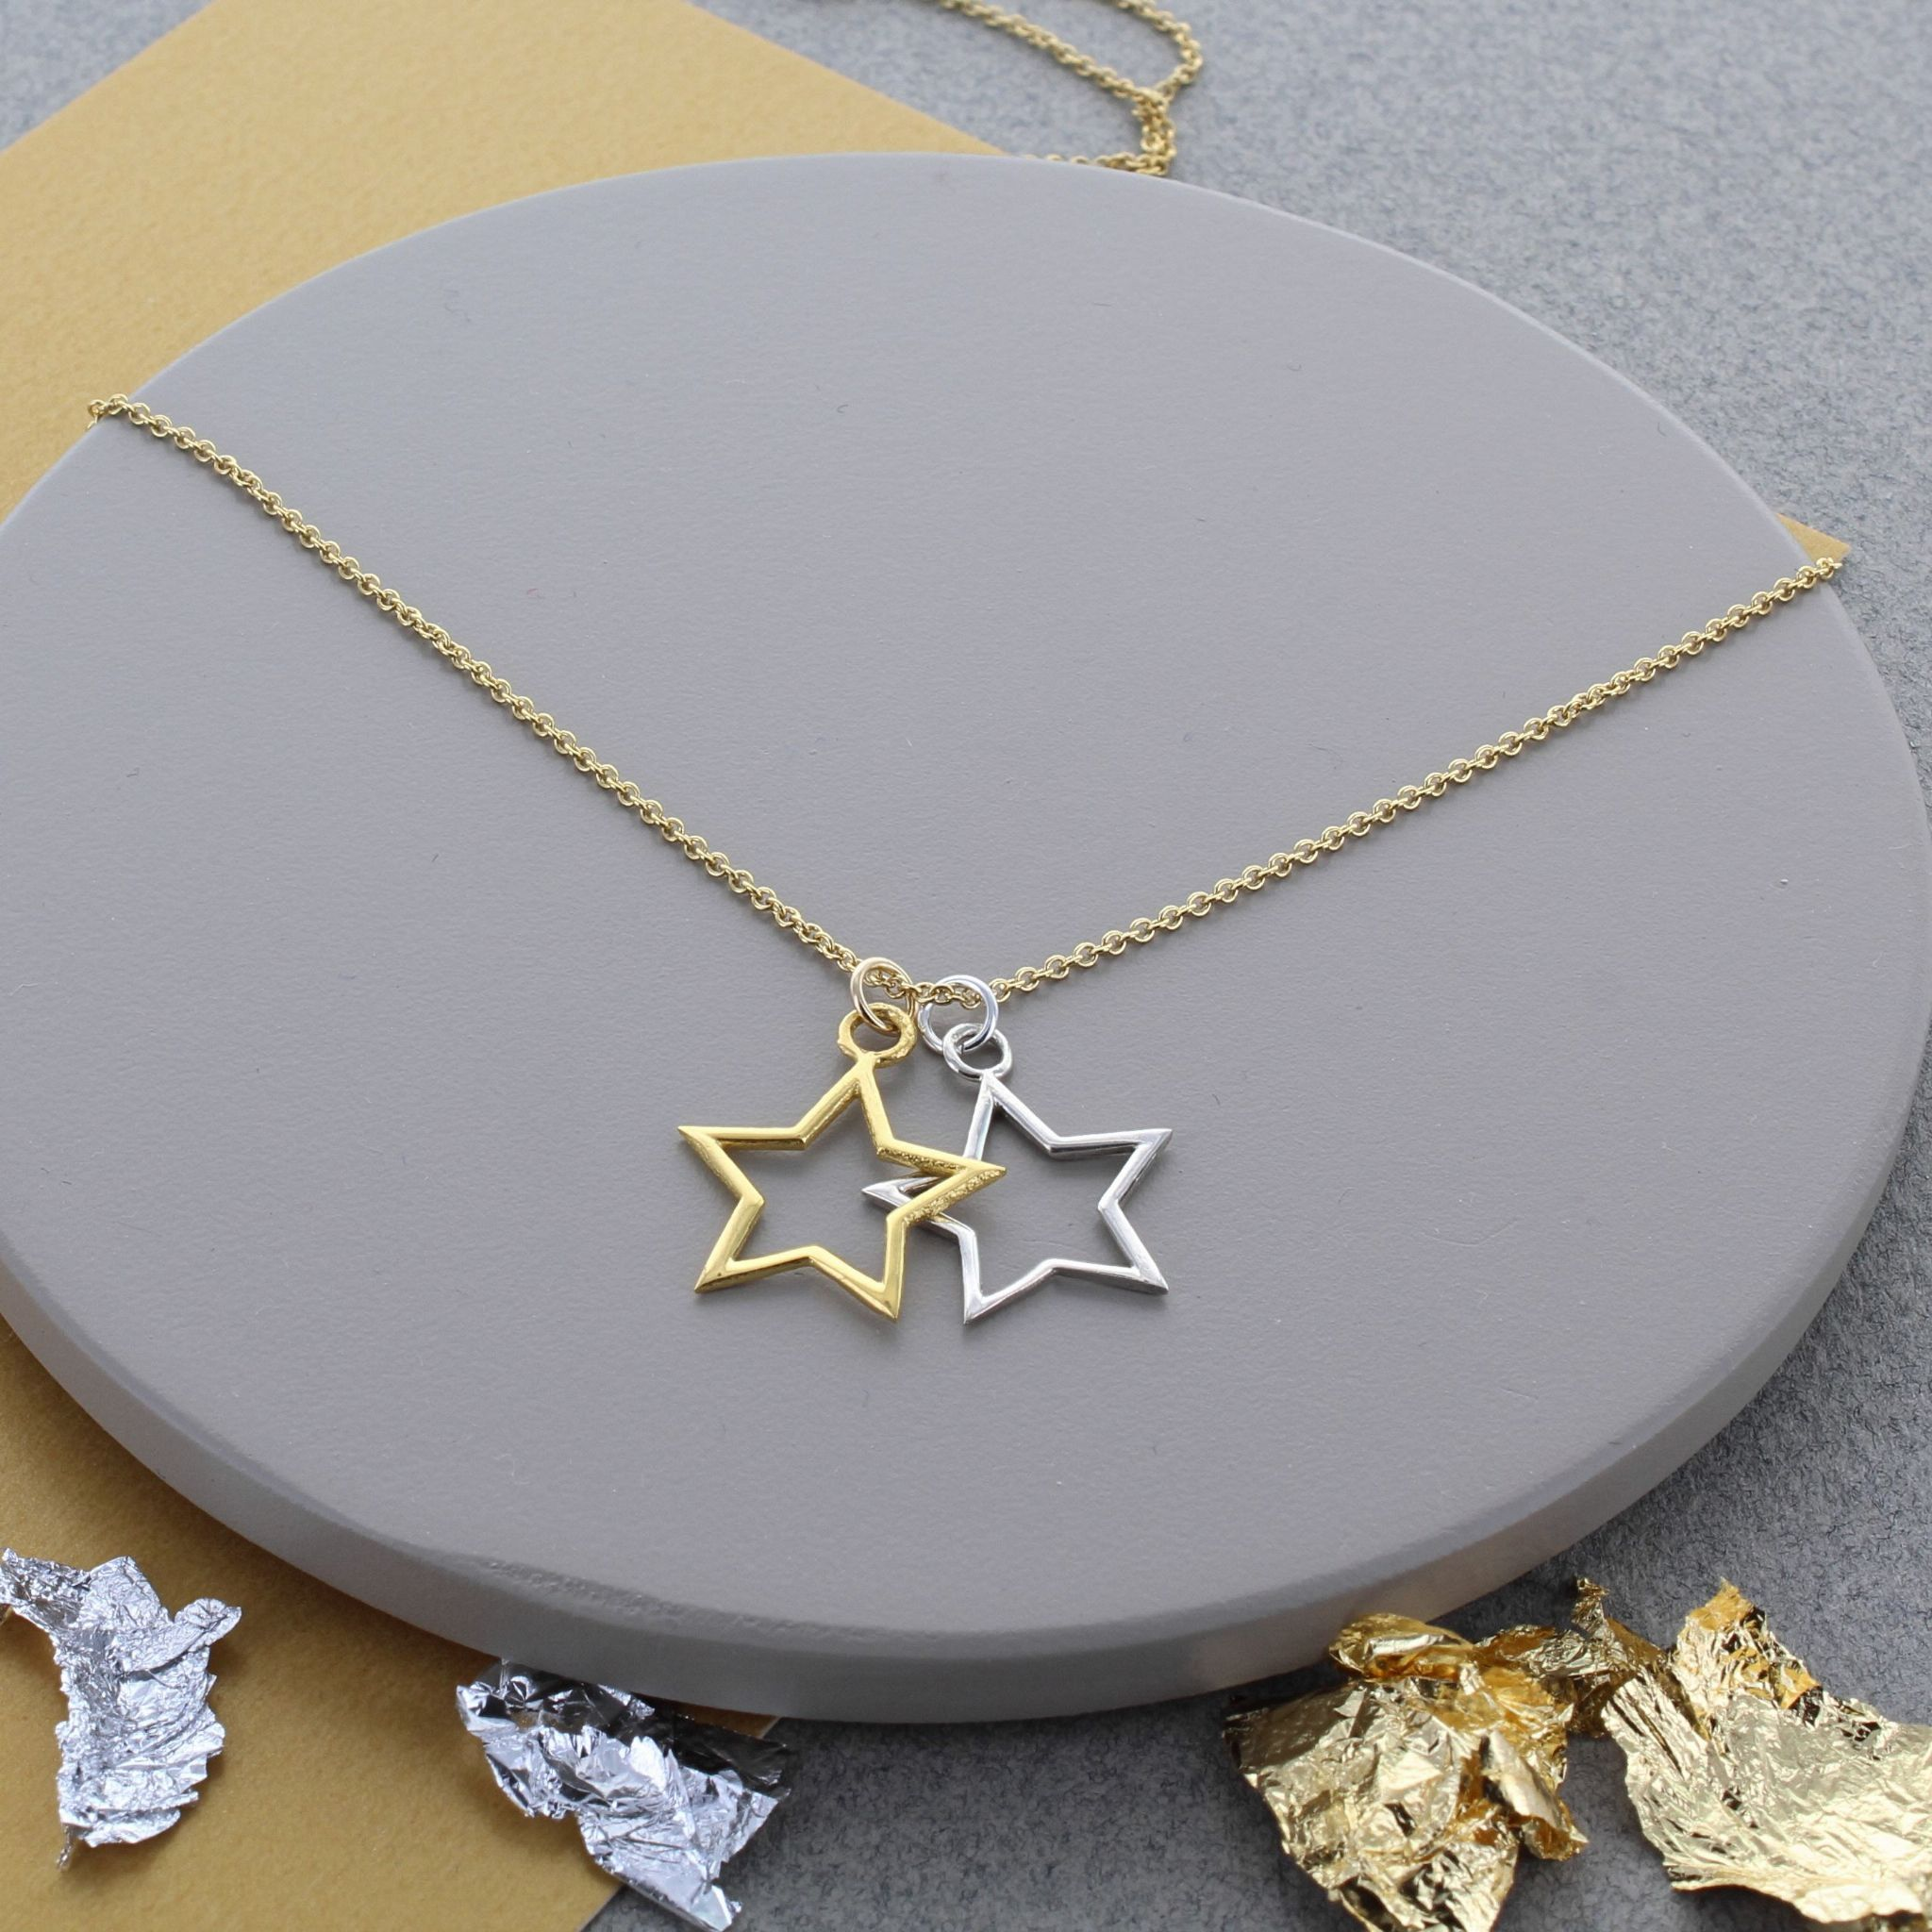 necklace yellow himiko diamond dana rebecca julianne designs gold star